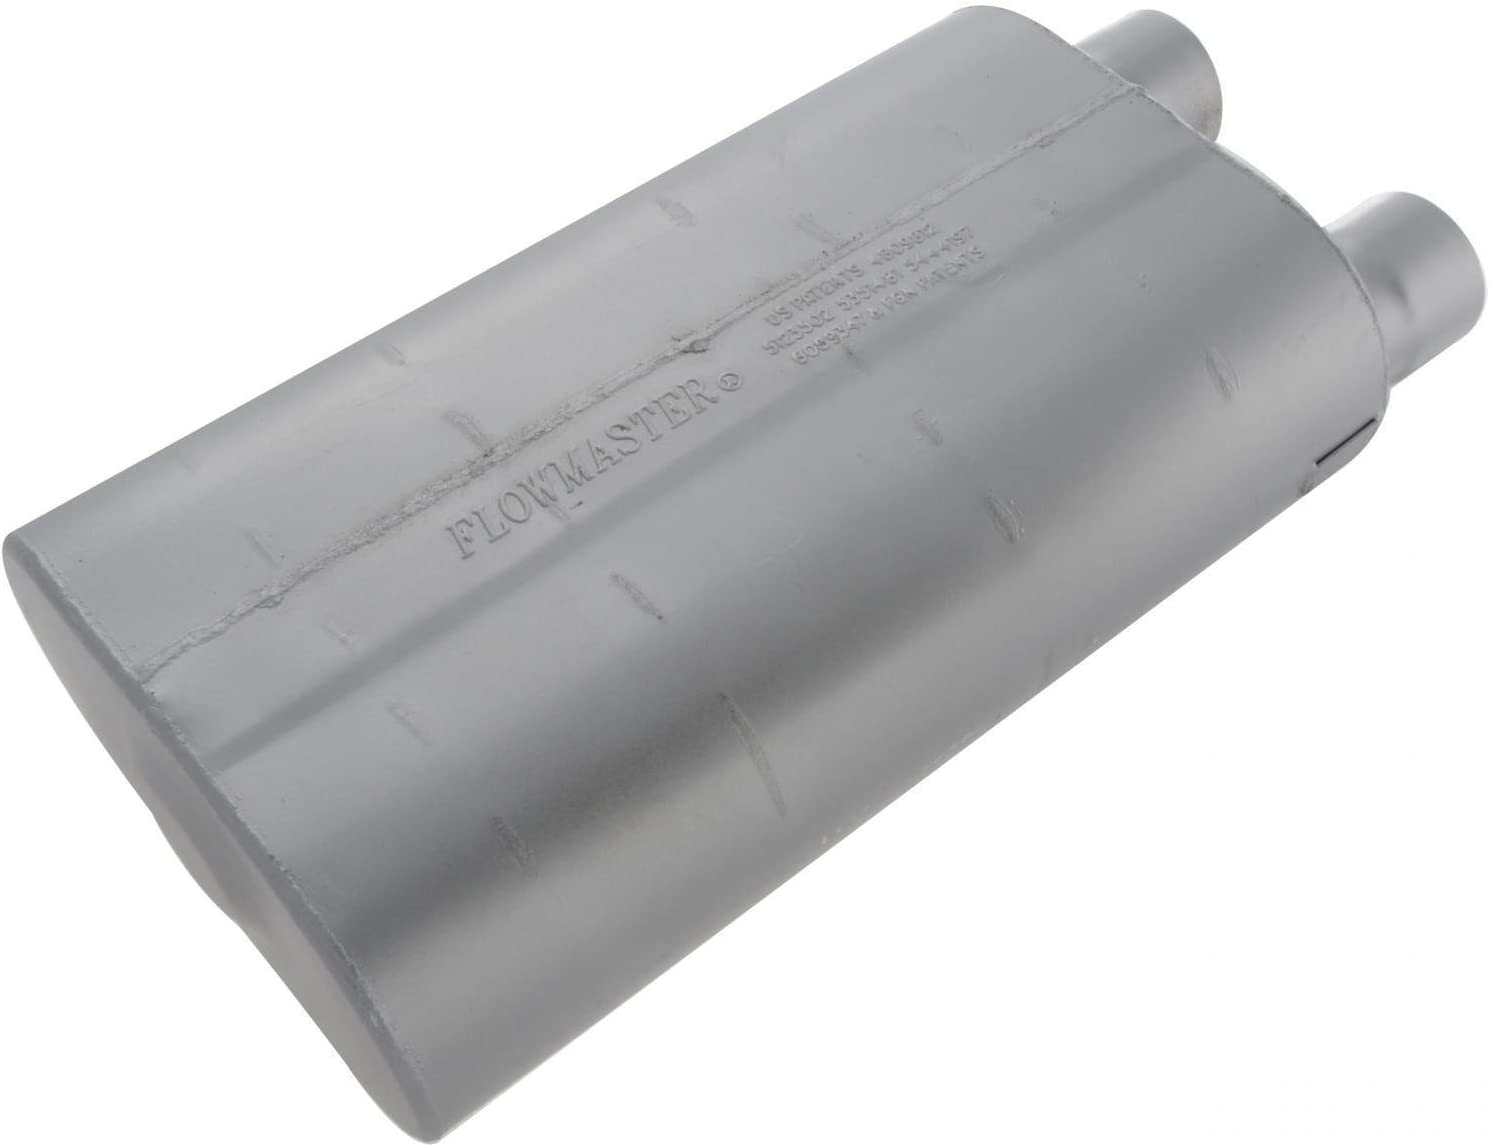 2.50 Offset IN 2.50 Same Side OUT Aggressive Sound Flowmaster 52580 80 Series Muffler